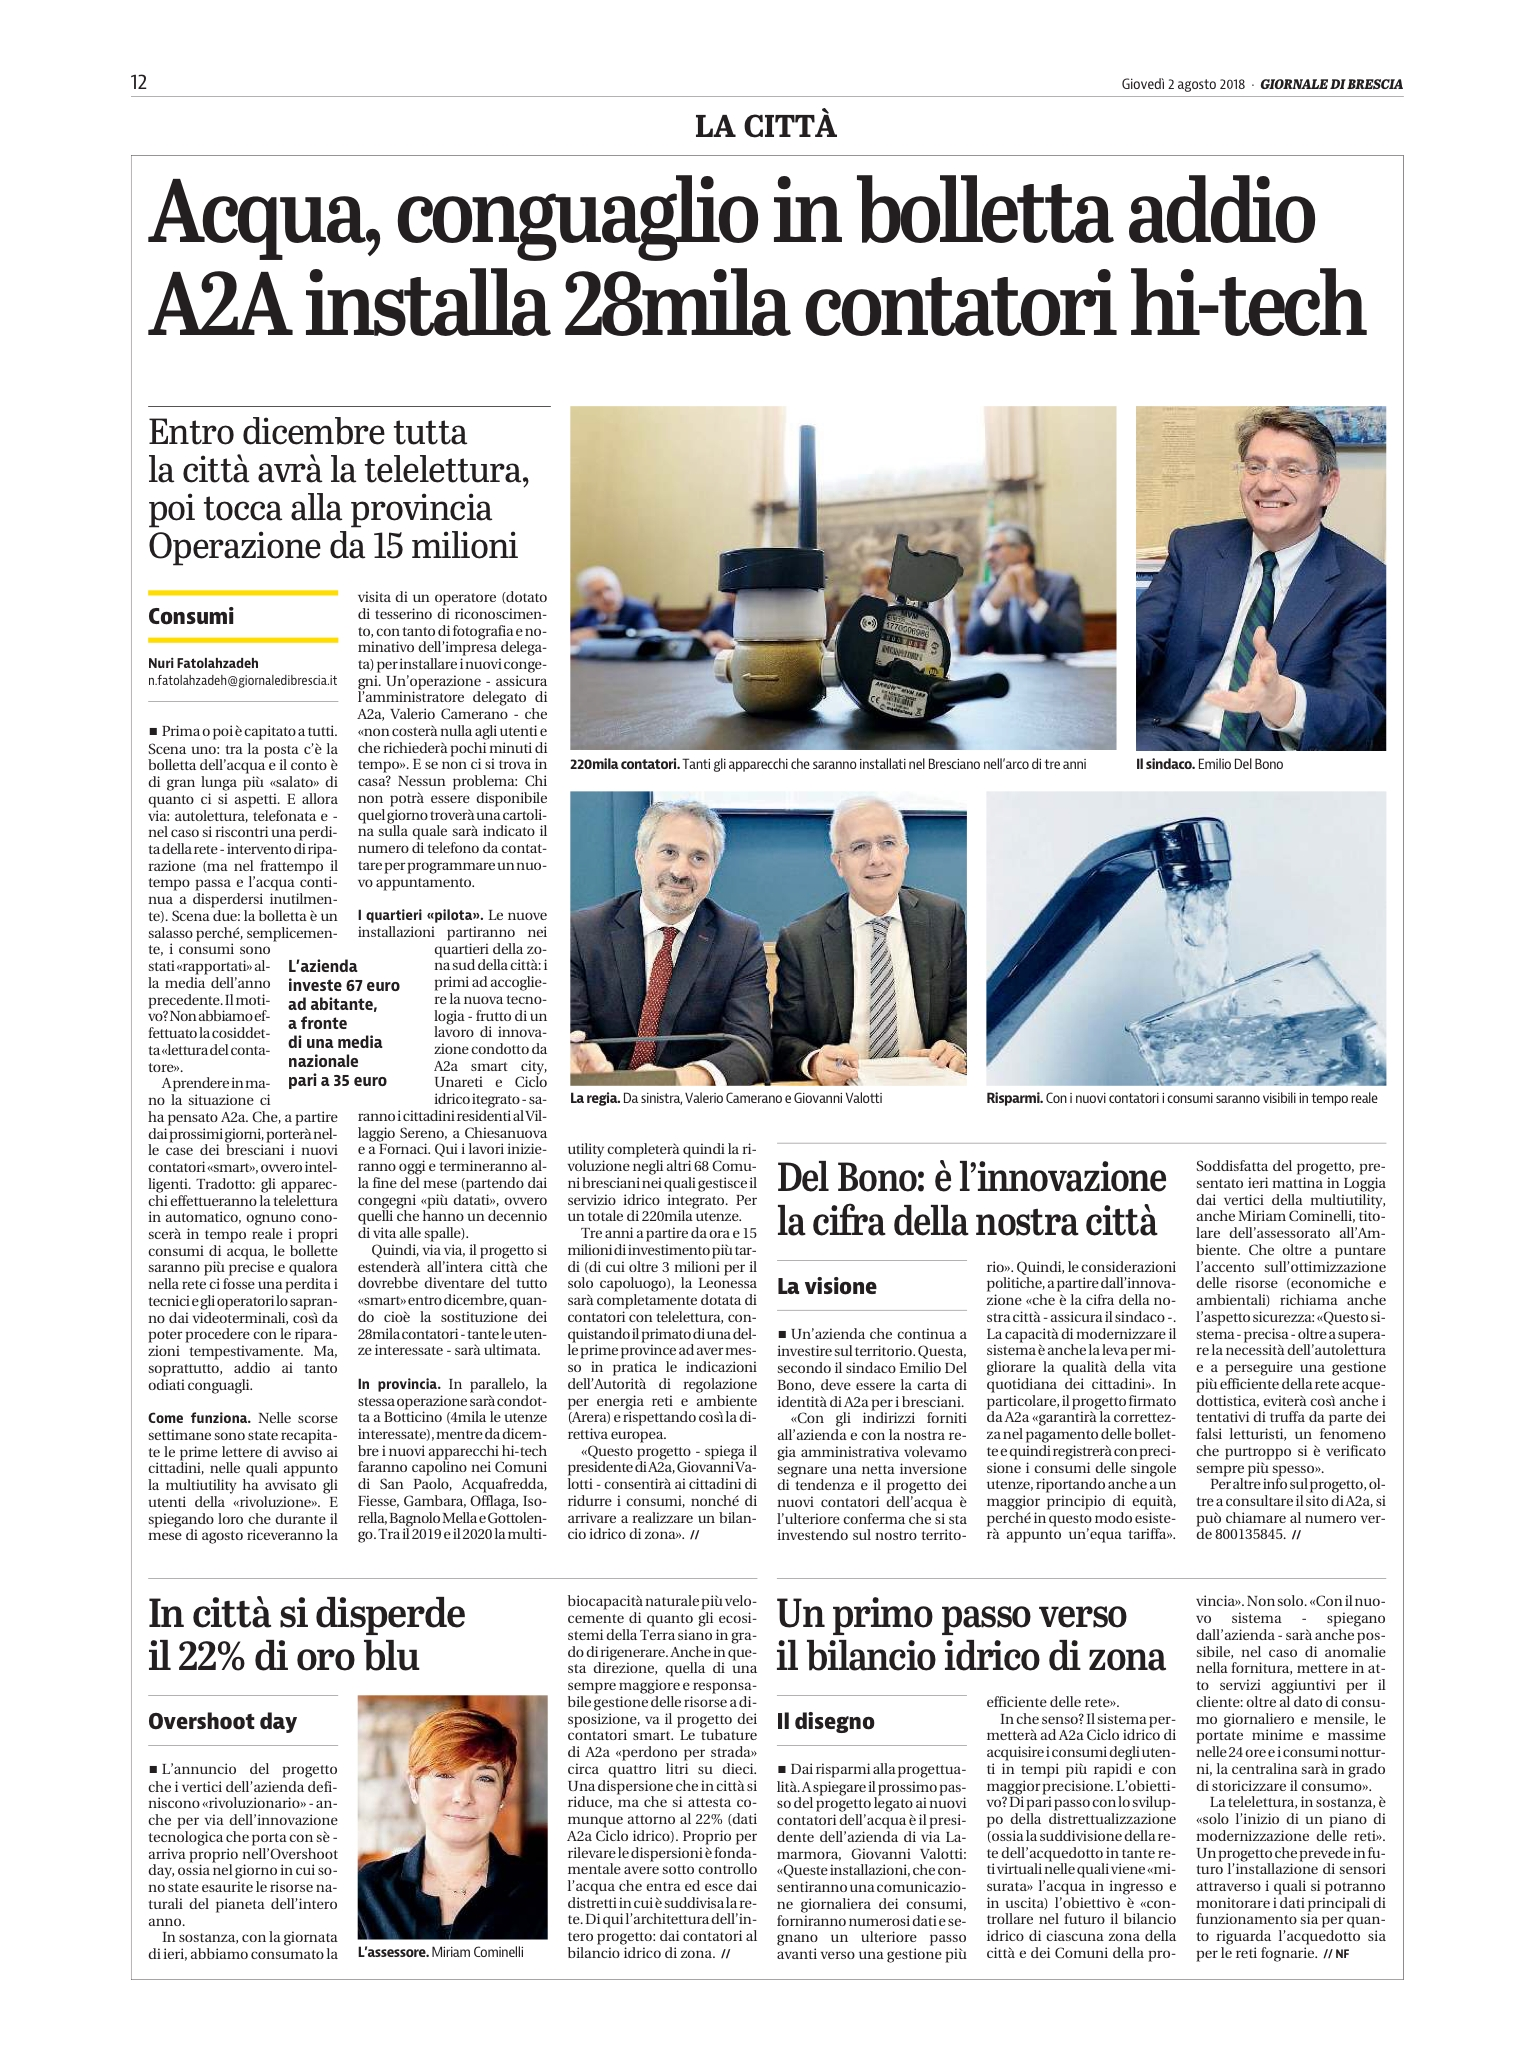 Local press - Giornale di Brescia Public utility A2A installs 28K smart water meters